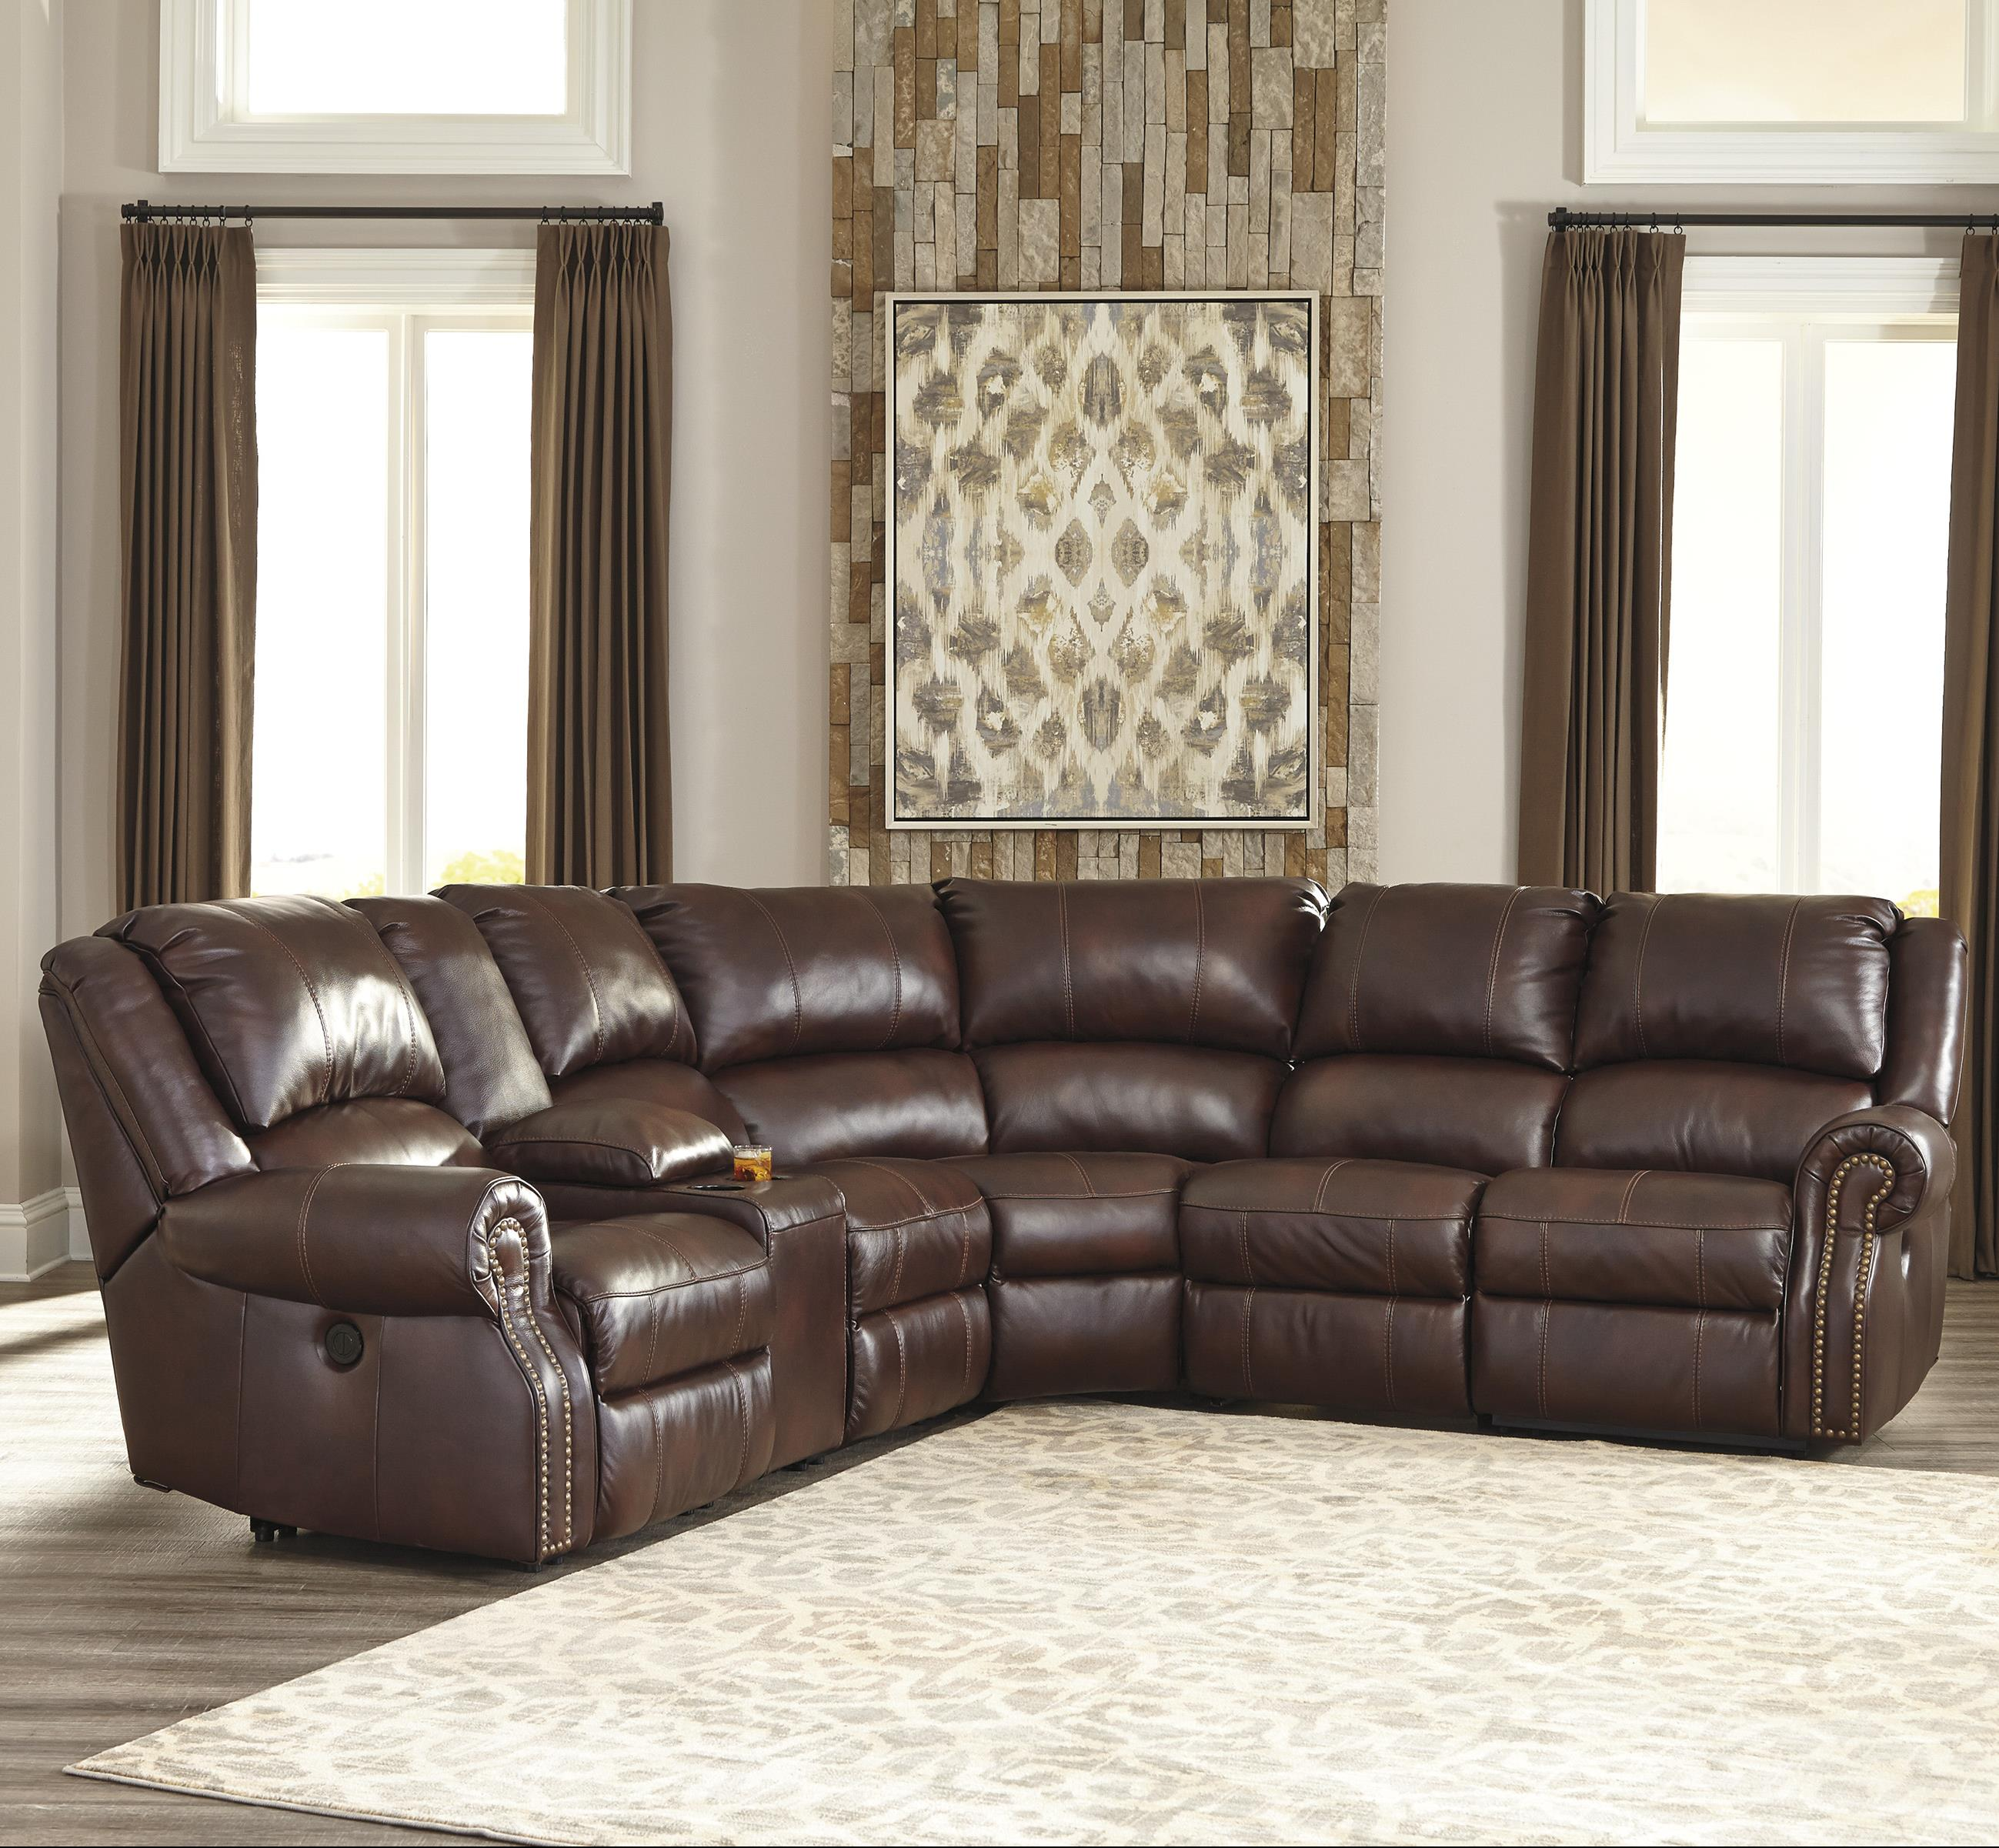 Signature Design by Ashley Collinsville 6Pc Sectional w/ Console & Armless Recliners - Item Number: U7210040+57+2x19+77+41